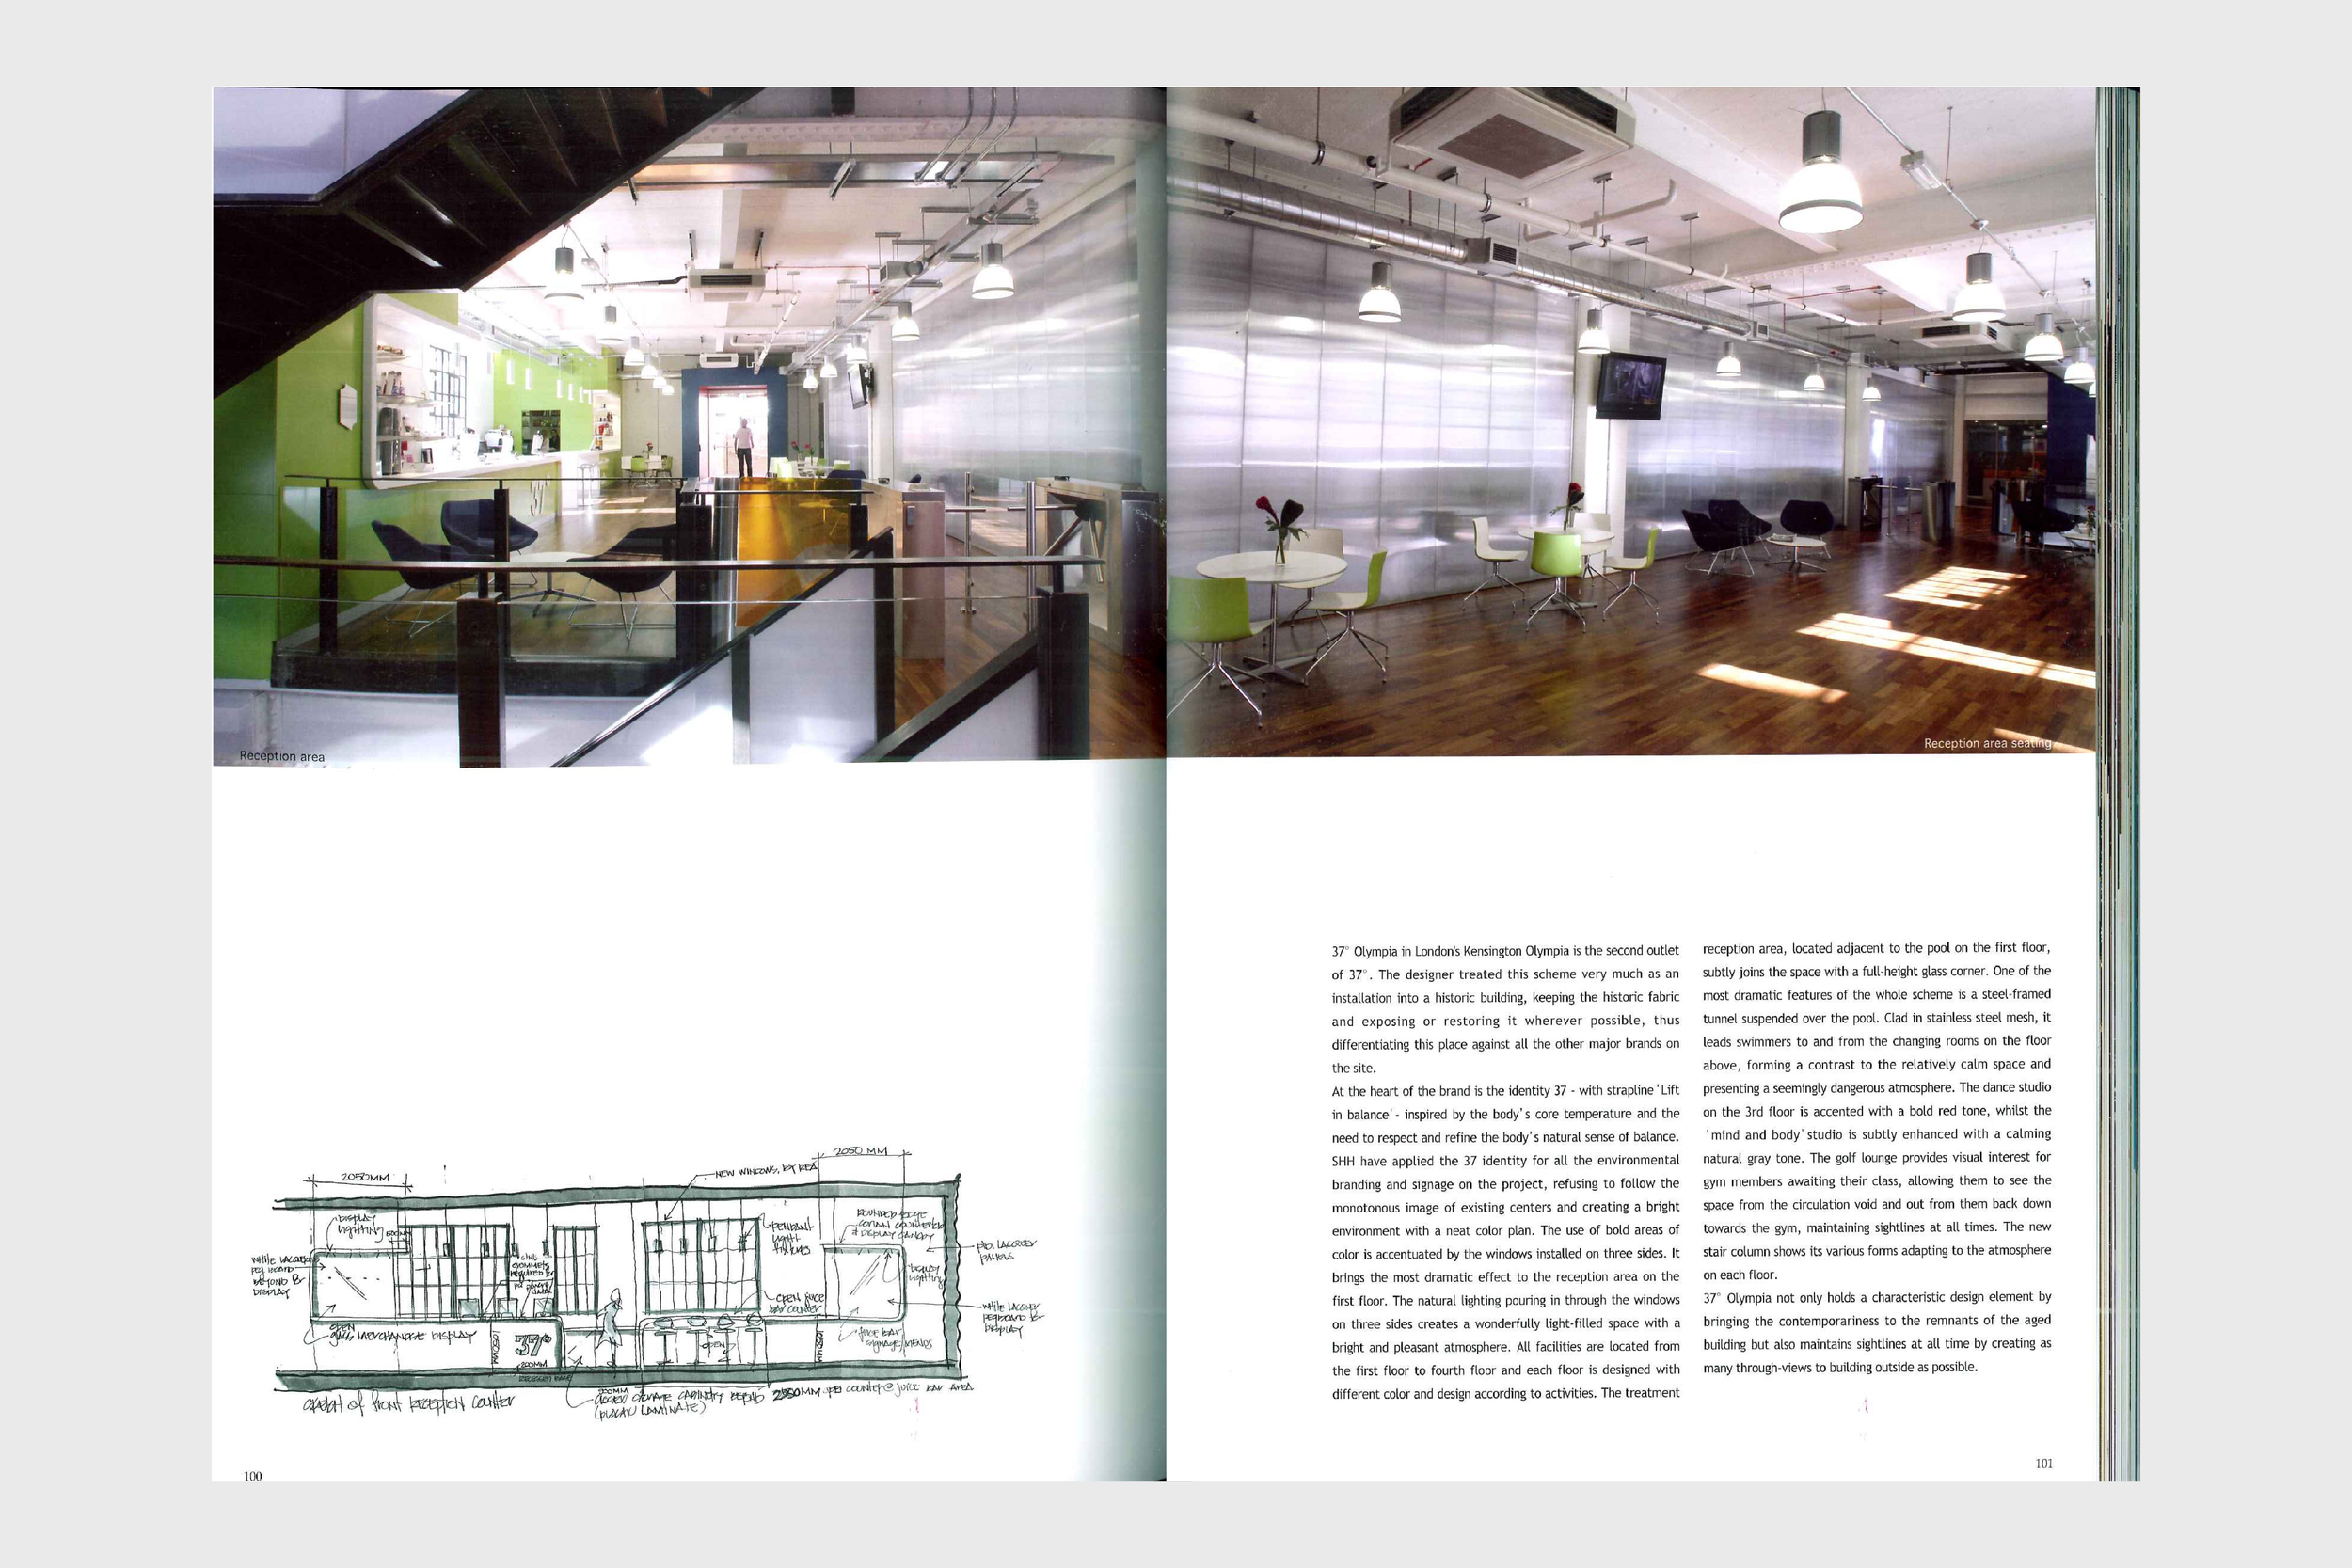 knof-press--iw--vol-68_03.jpg